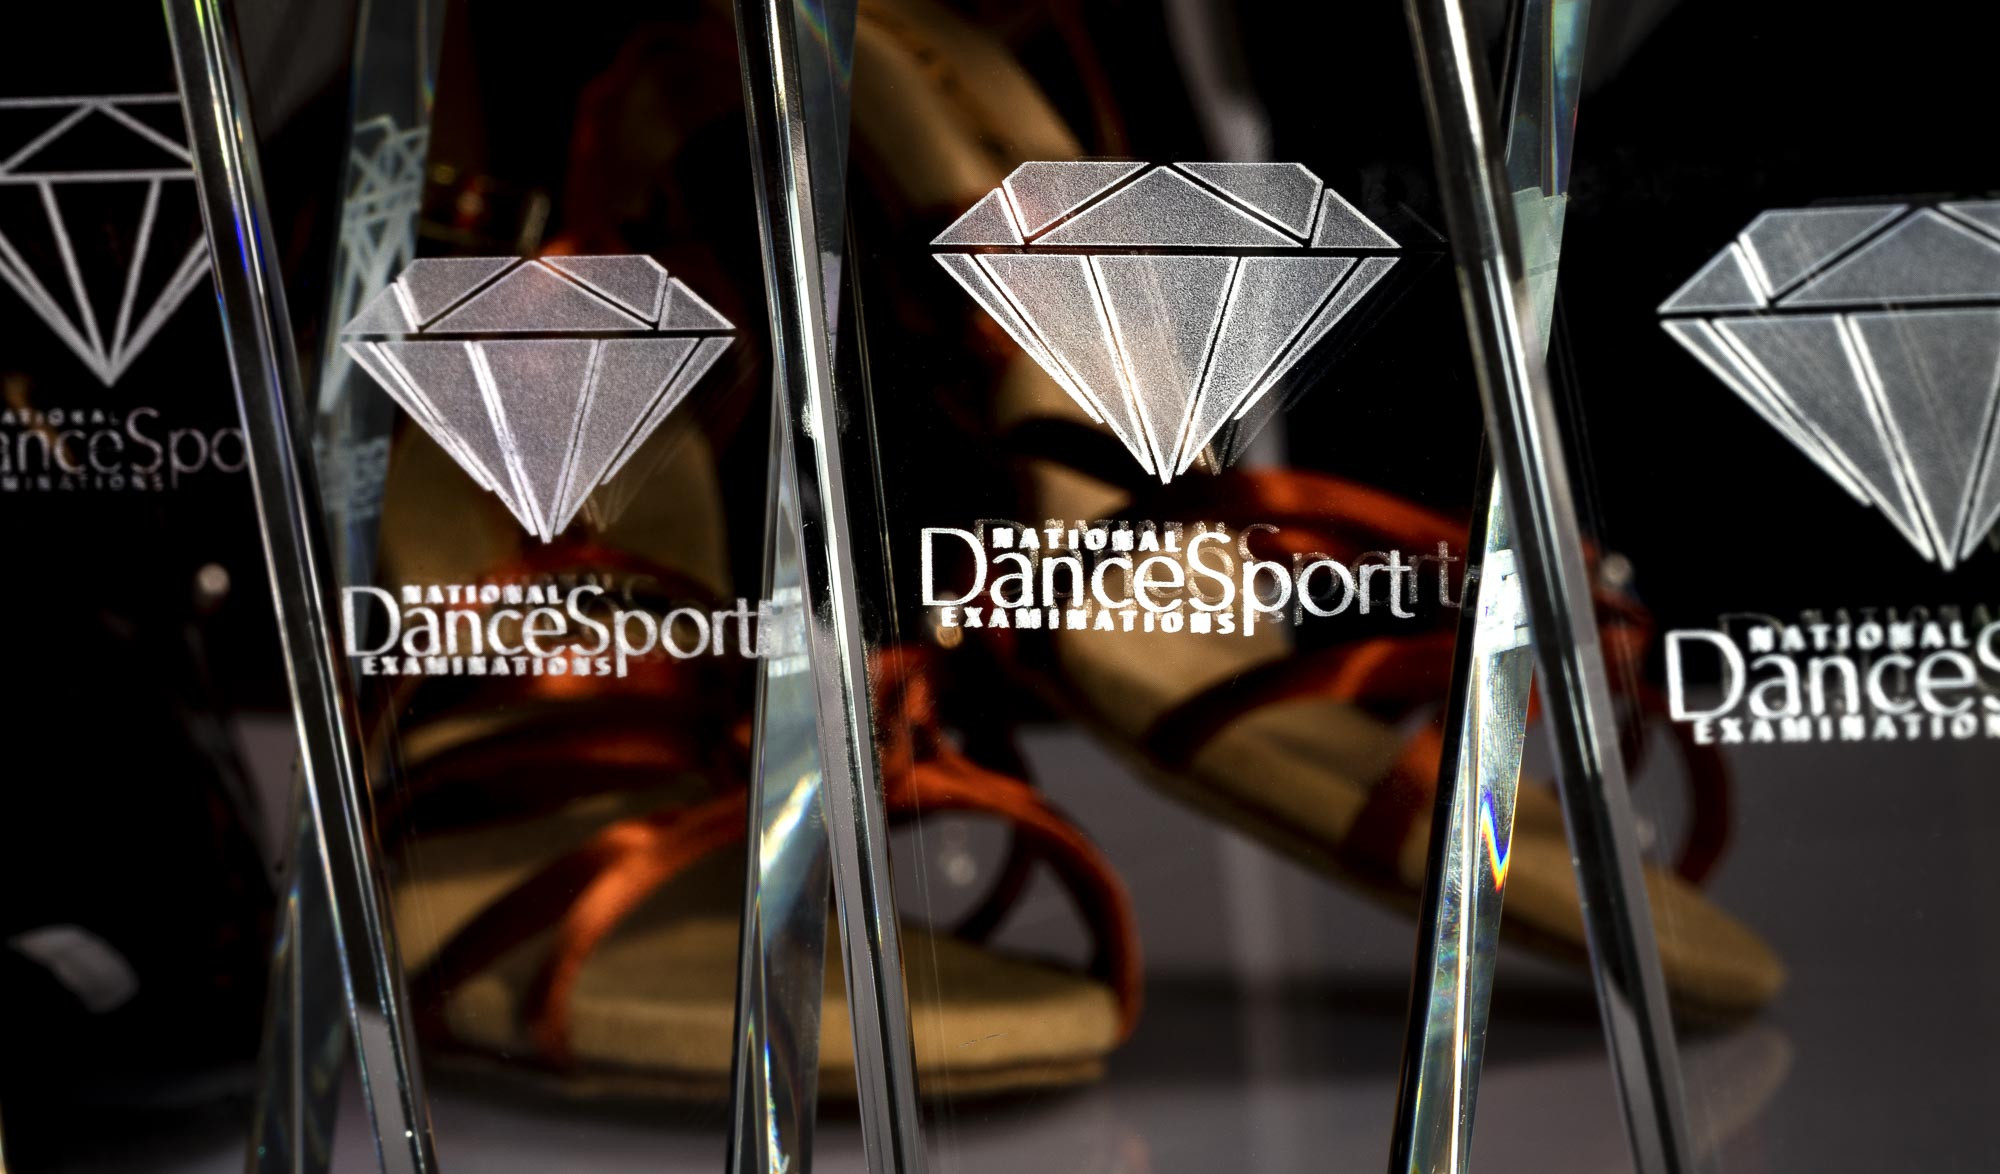 Lifestyle product photography of dancing medal and plate - close-up of trophies